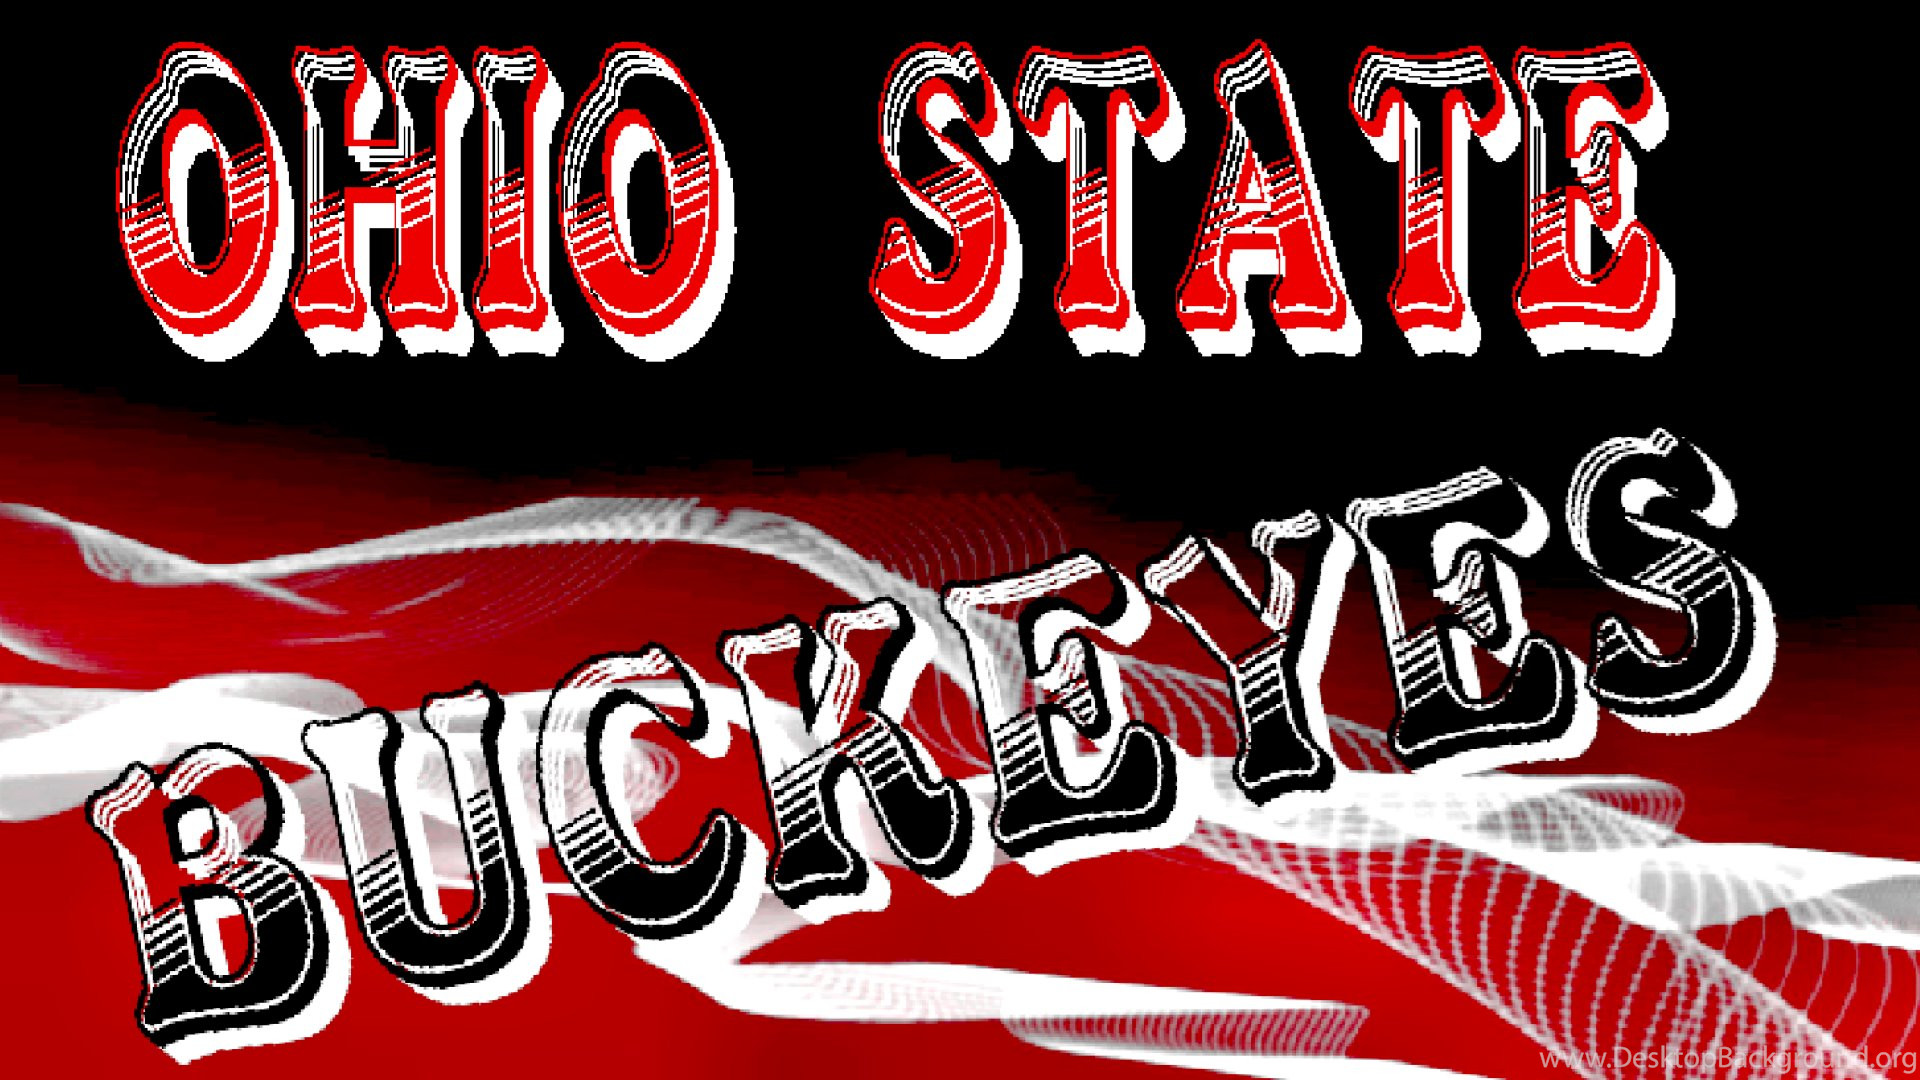 1920x1080 OHIO STATE BUCKEYES Ohio State Football Wallpaper 29089200